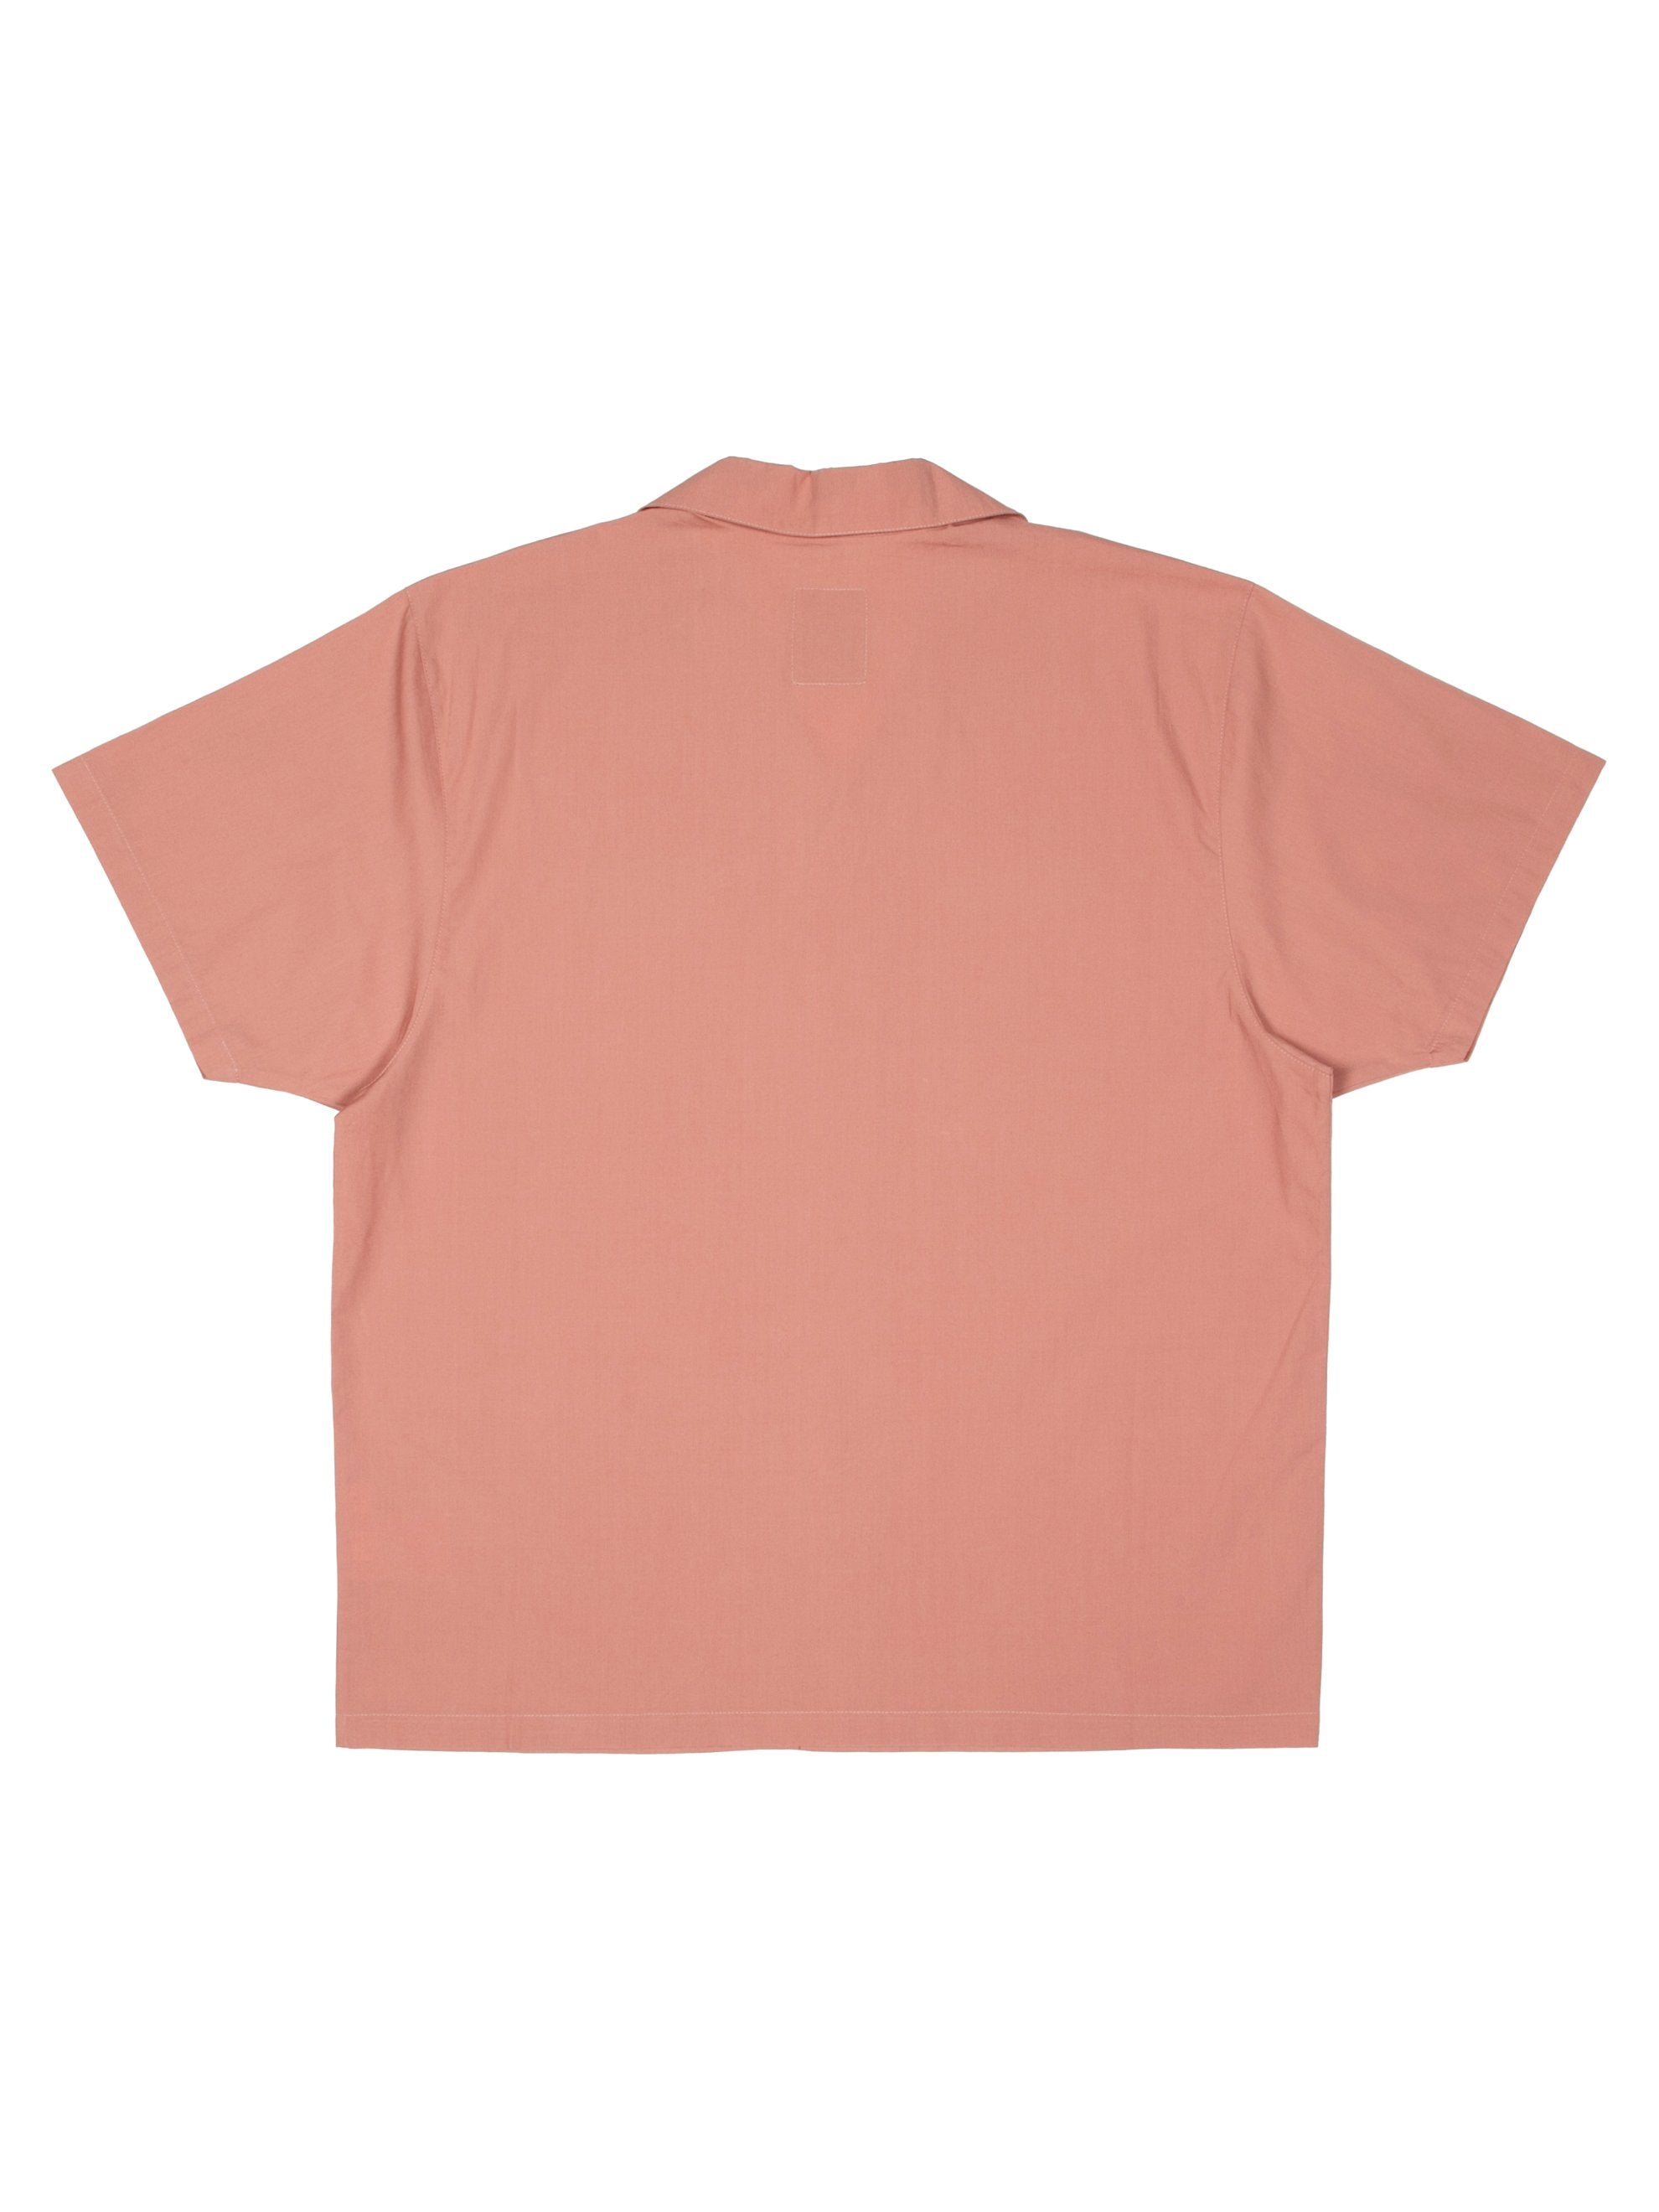 Rustic Pink Mechanic Shirt 3